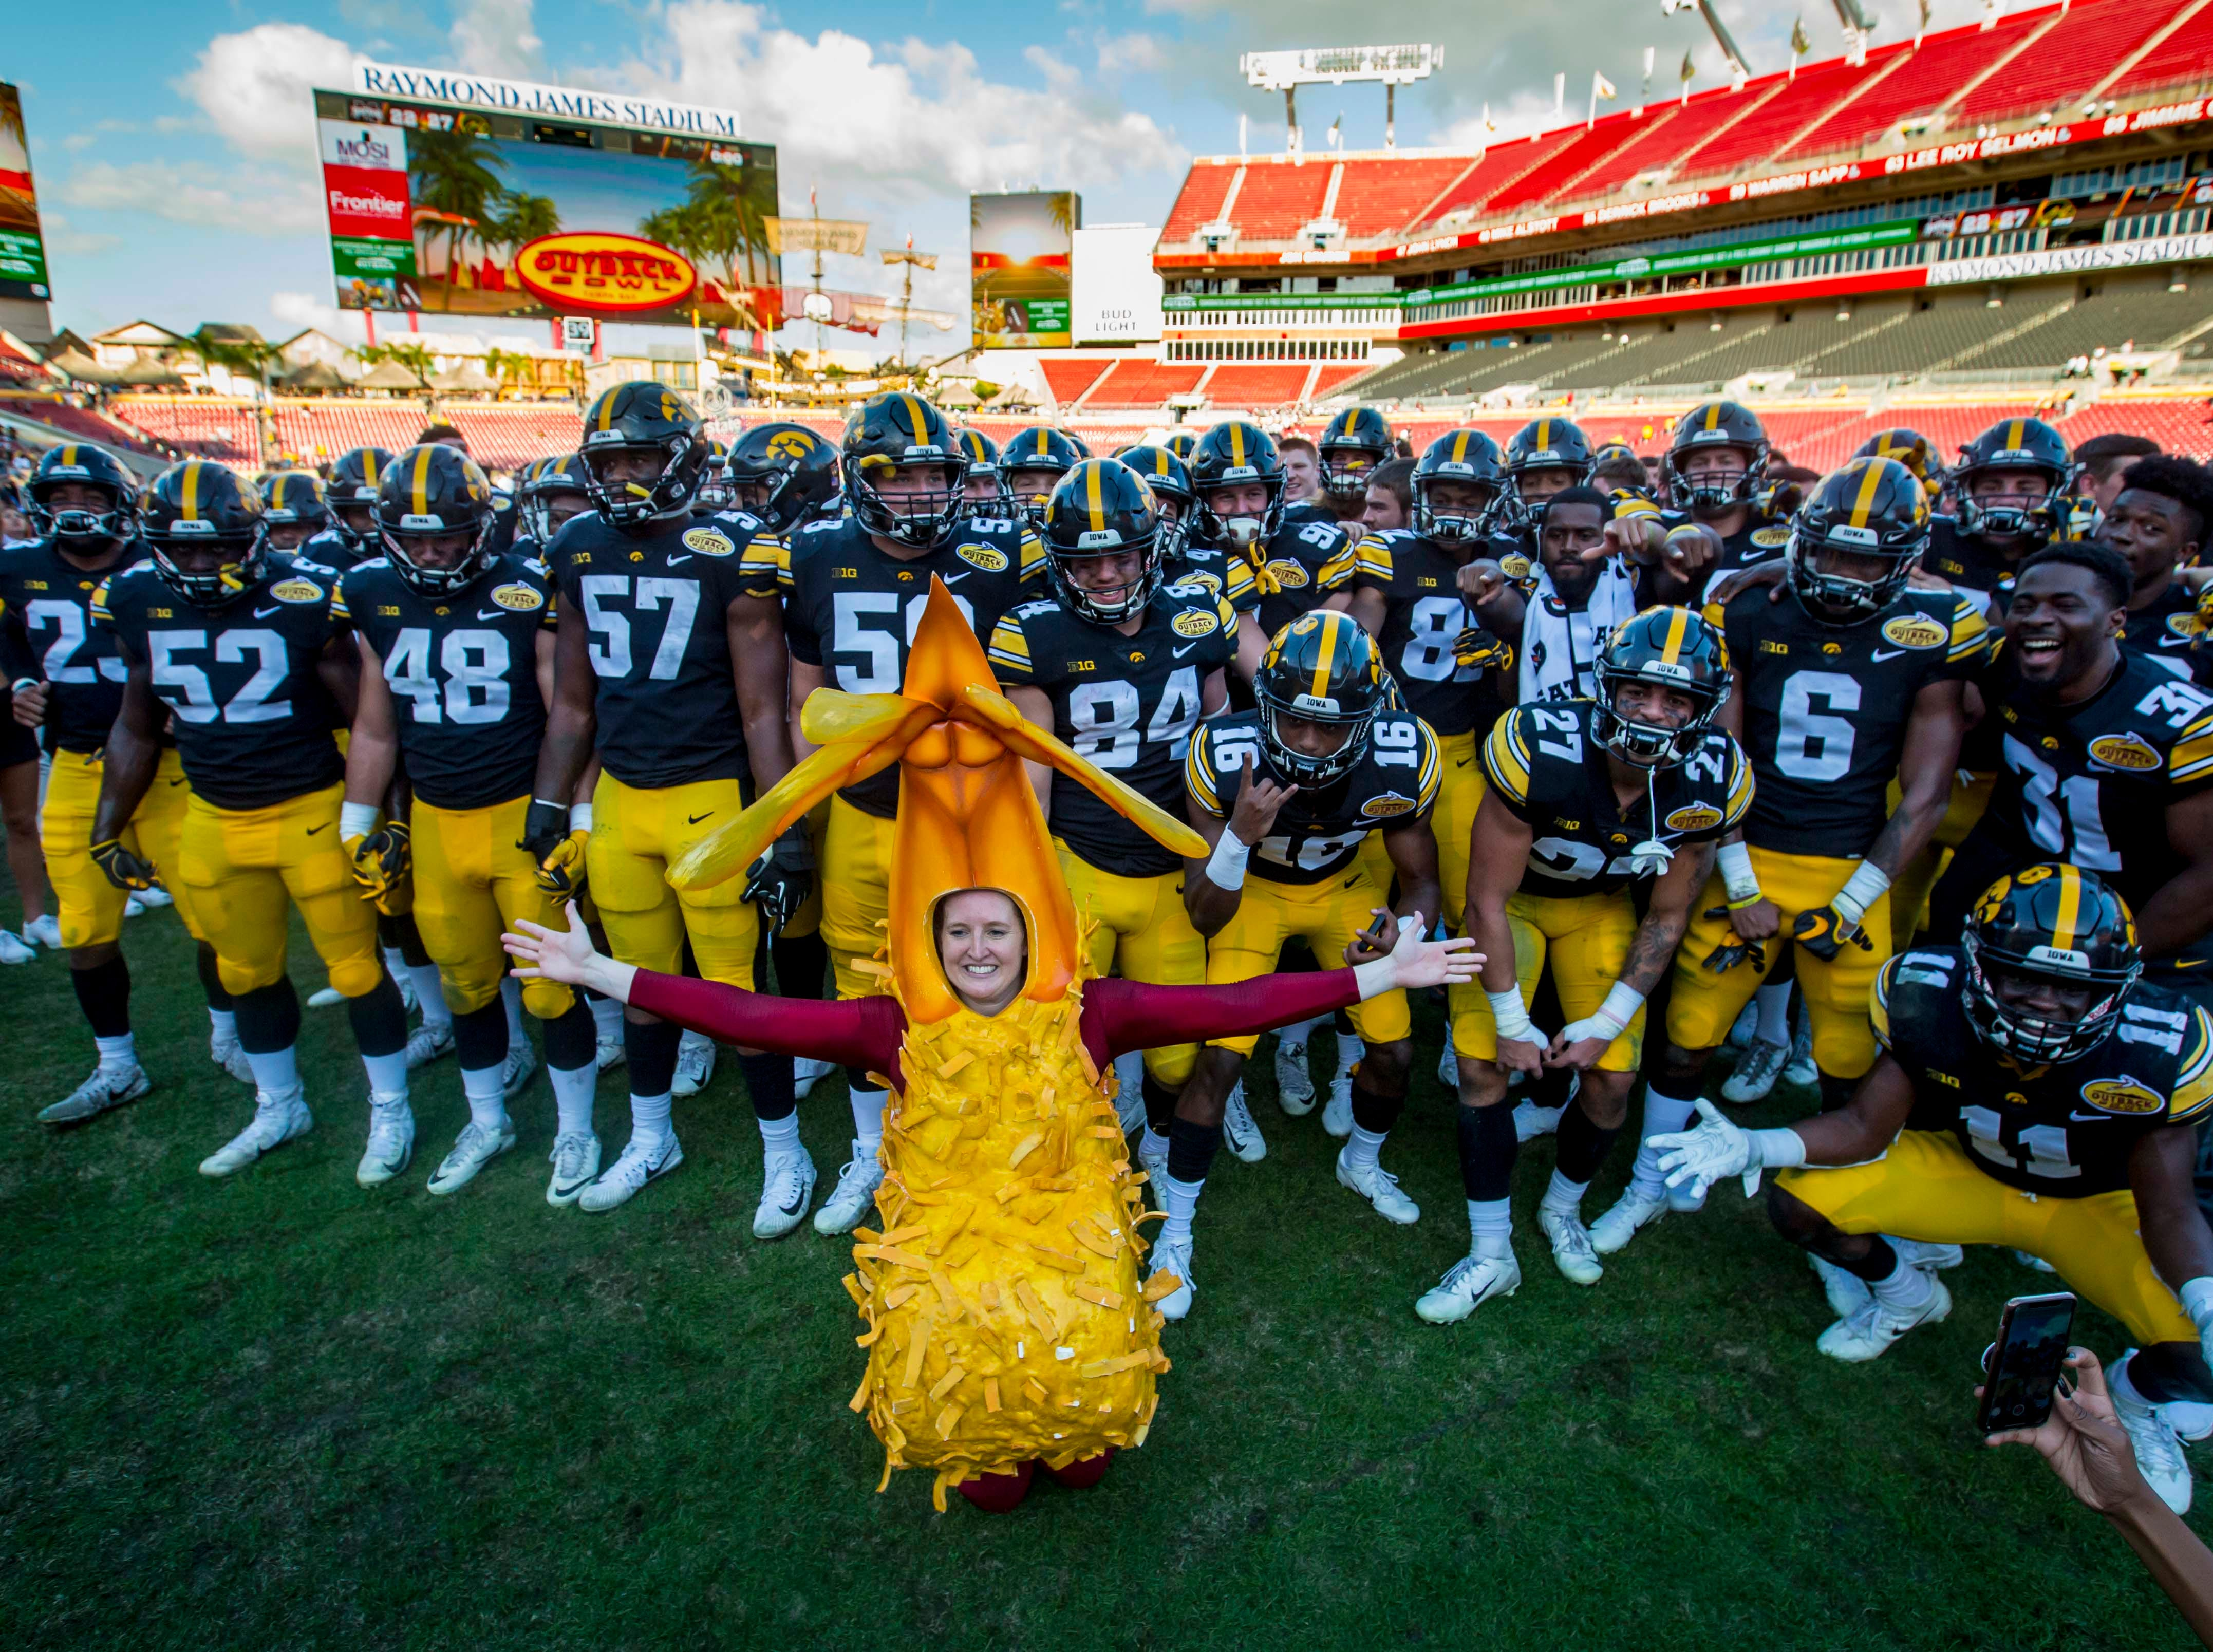 An Outback Bowl mascot with Iowa football players celebrate their victory over Mississippi State at the Outback Bowl Tues., Jan. 1, 2019, at Raymond James Stadium in Tampa, Florida. Iowa defeated Mississippi State 27-22.